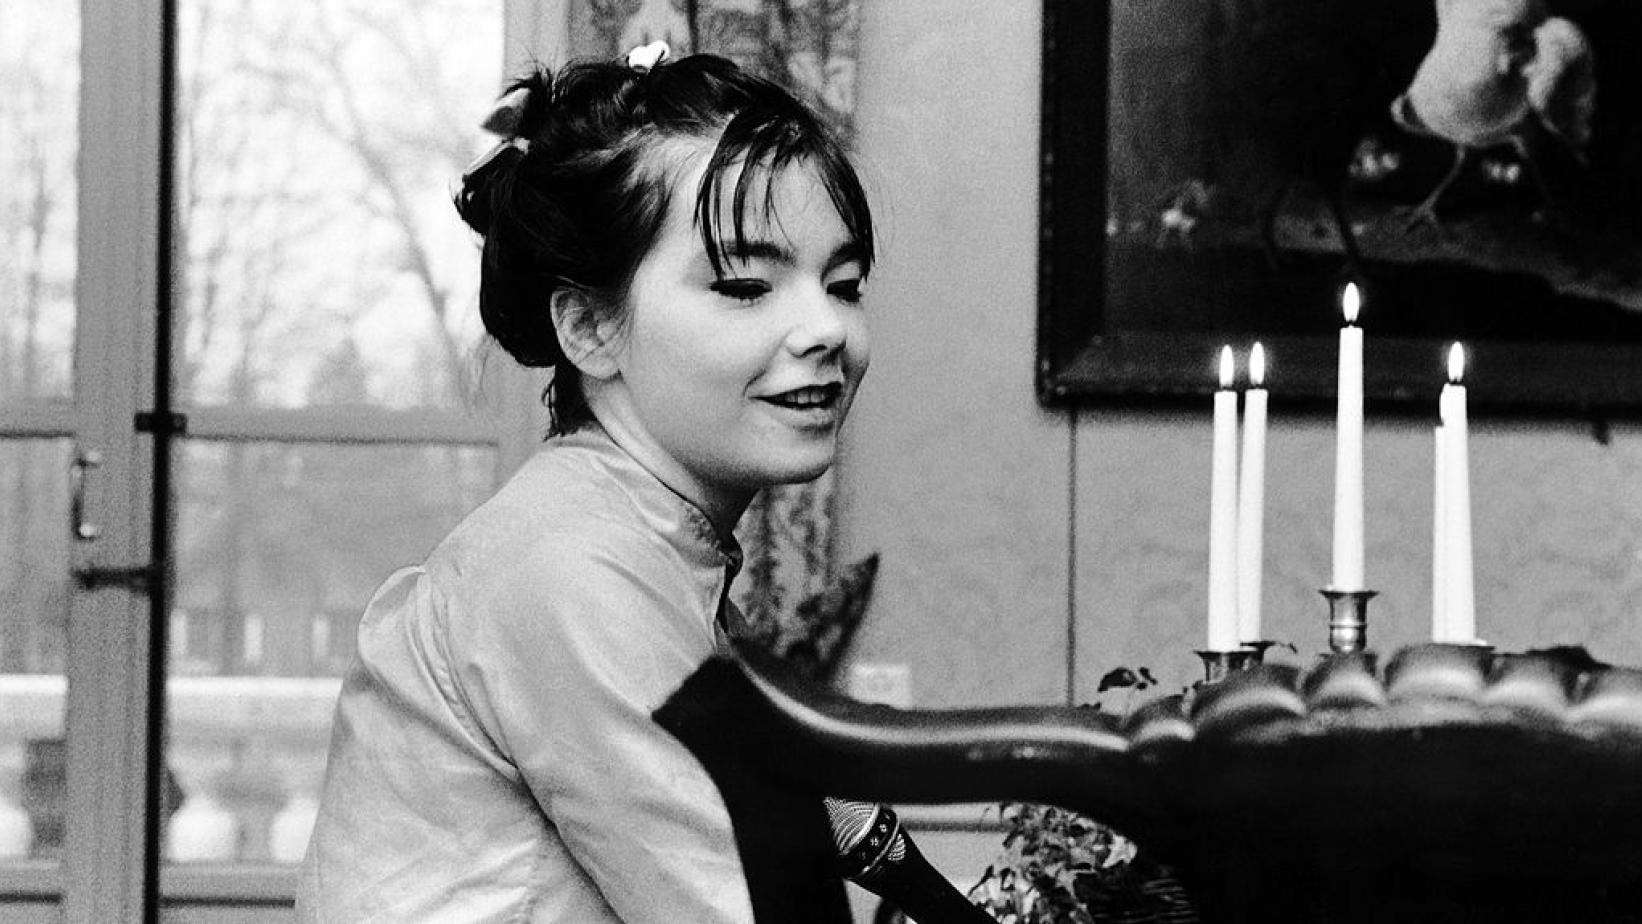 Björk in The Netherlands in 1995